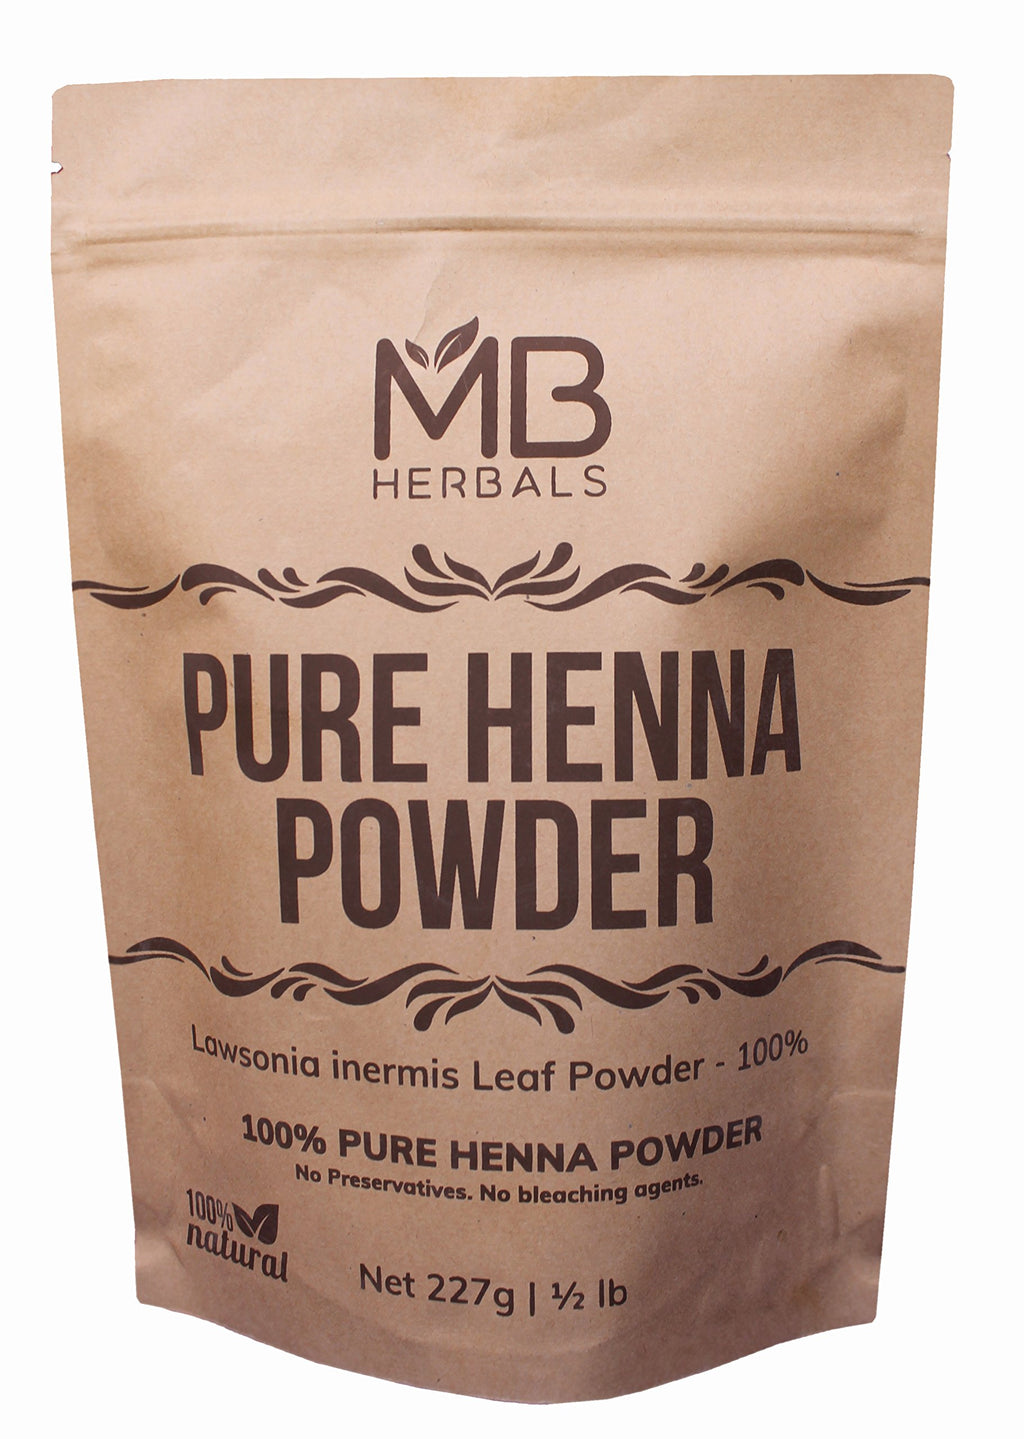 MB Herbals Henna Powder 454 Gram | One Pound | For Natural Hair Color | Triple Sifted | Raw | Non-Radiated |100% Natural - Nothing Added or Removed